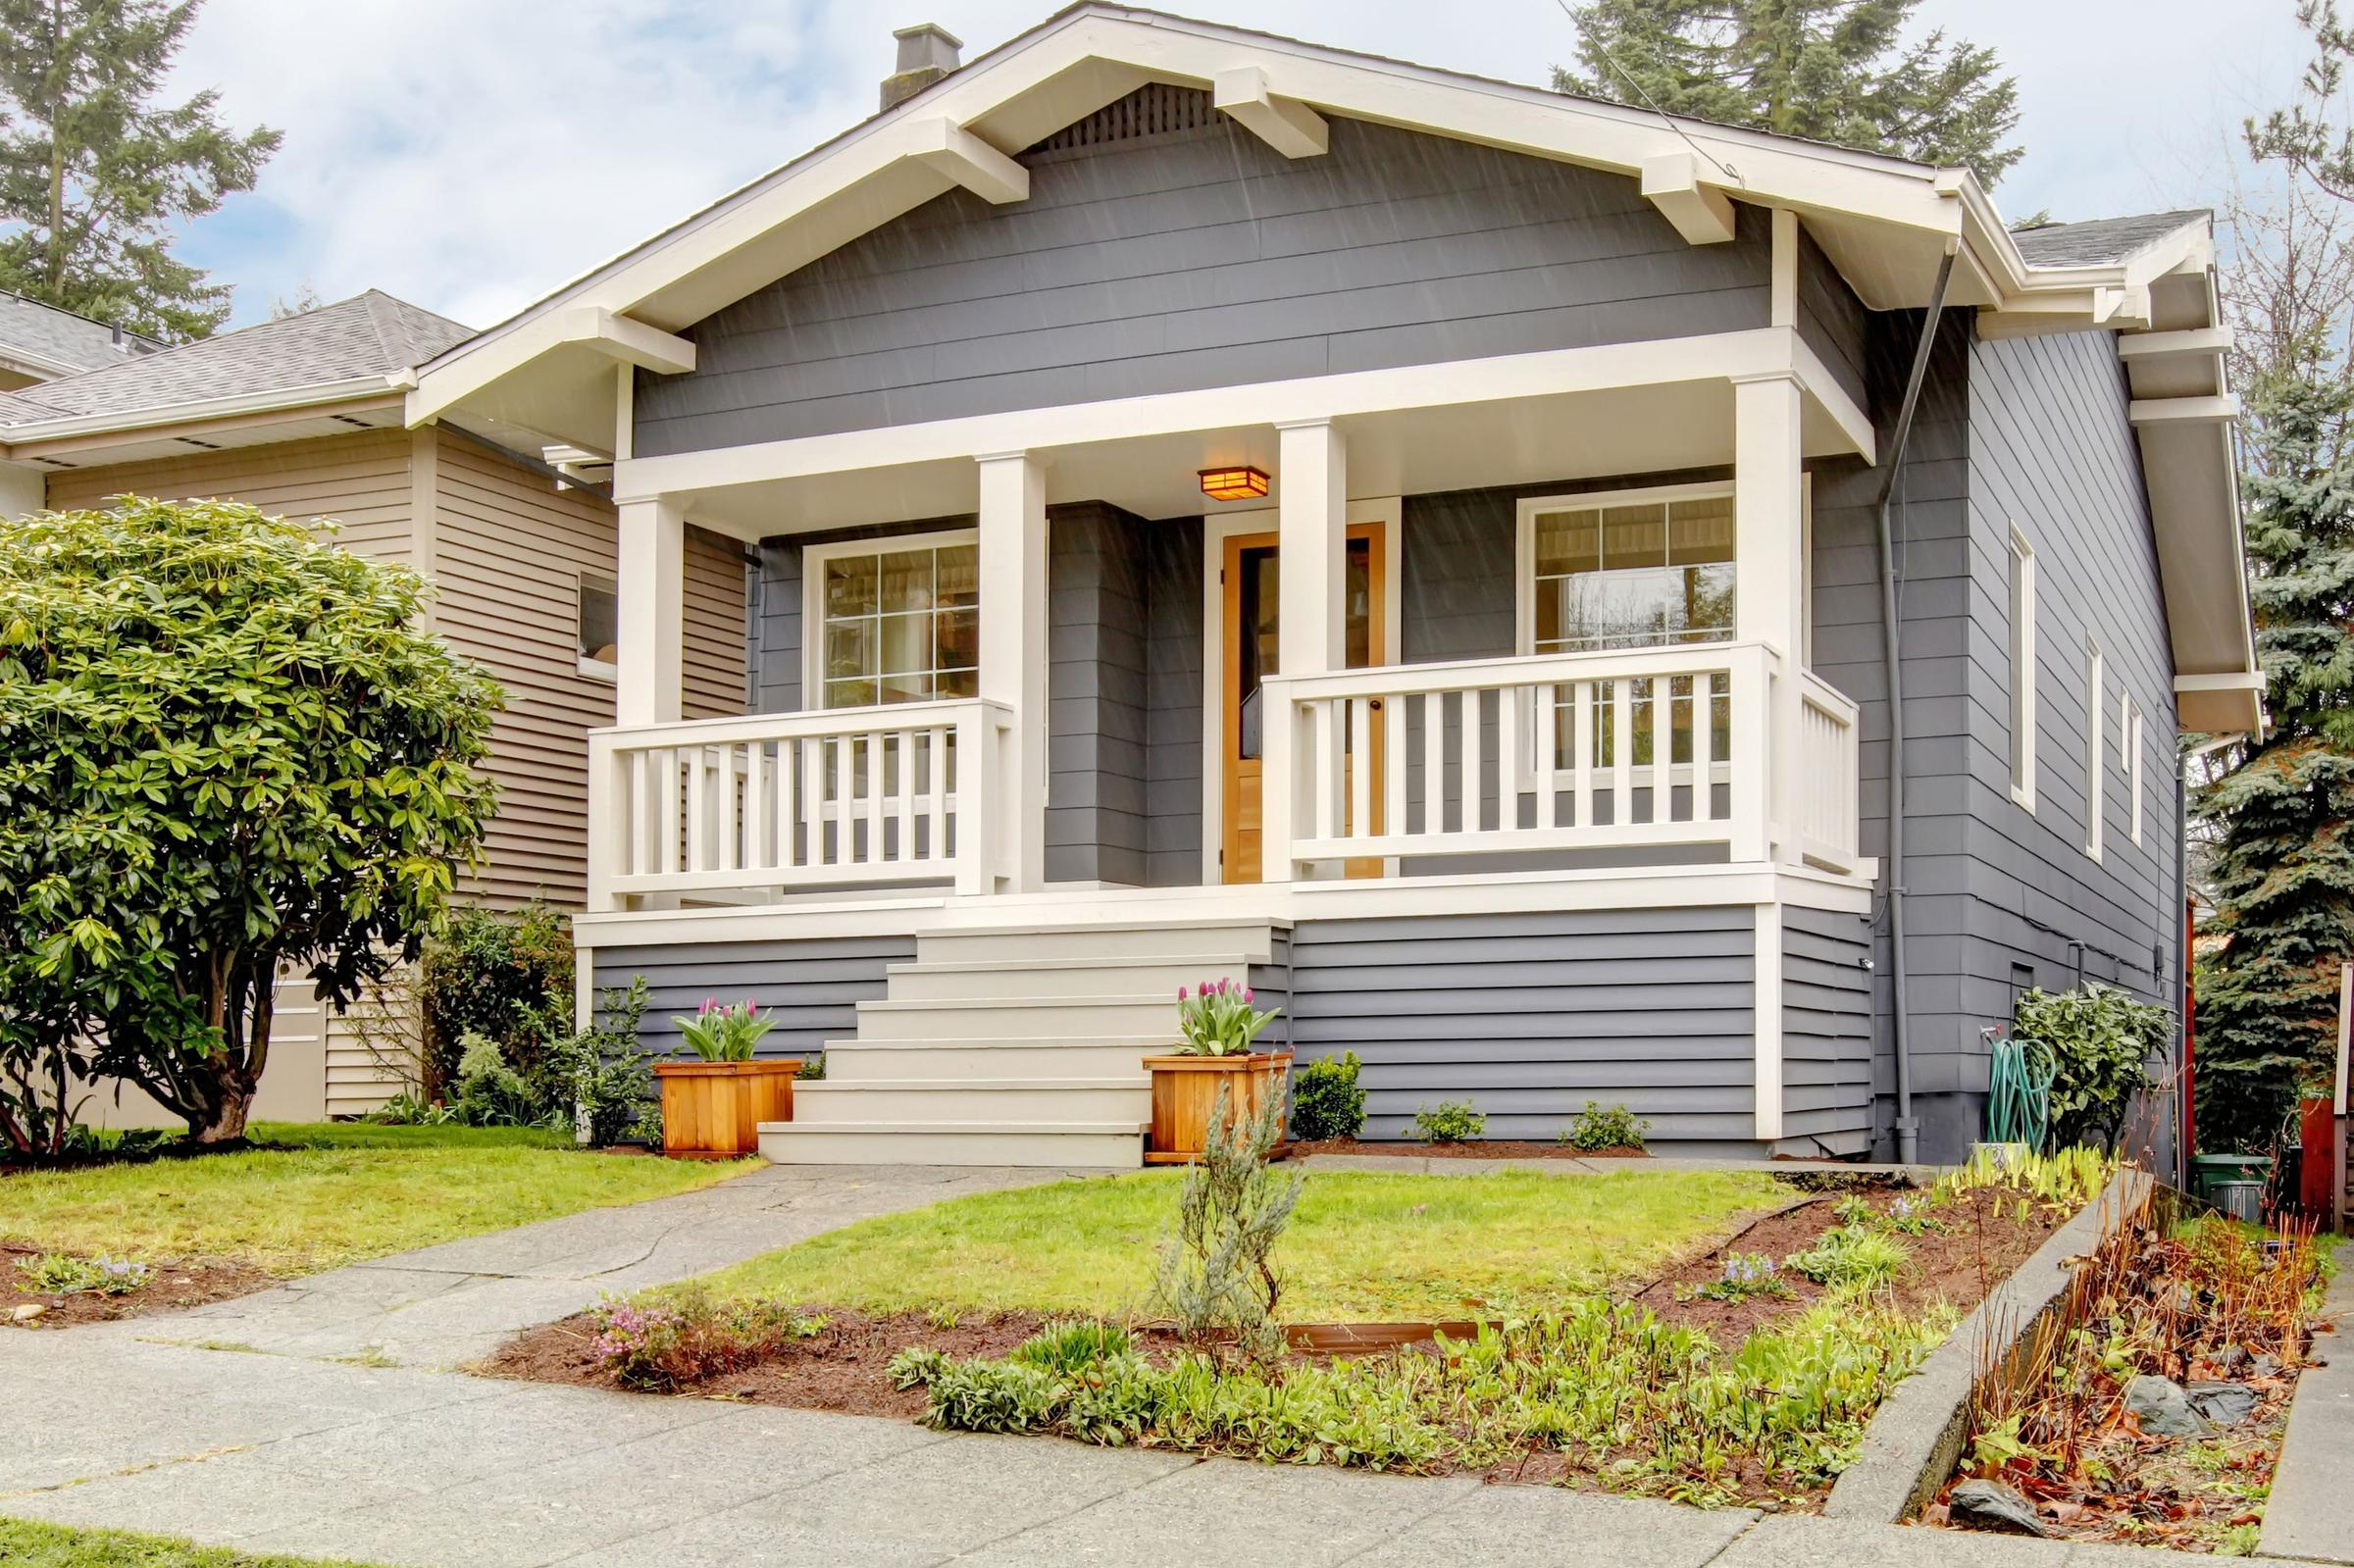 Buy Your First Home in One Year: A Step-by-Step Guide